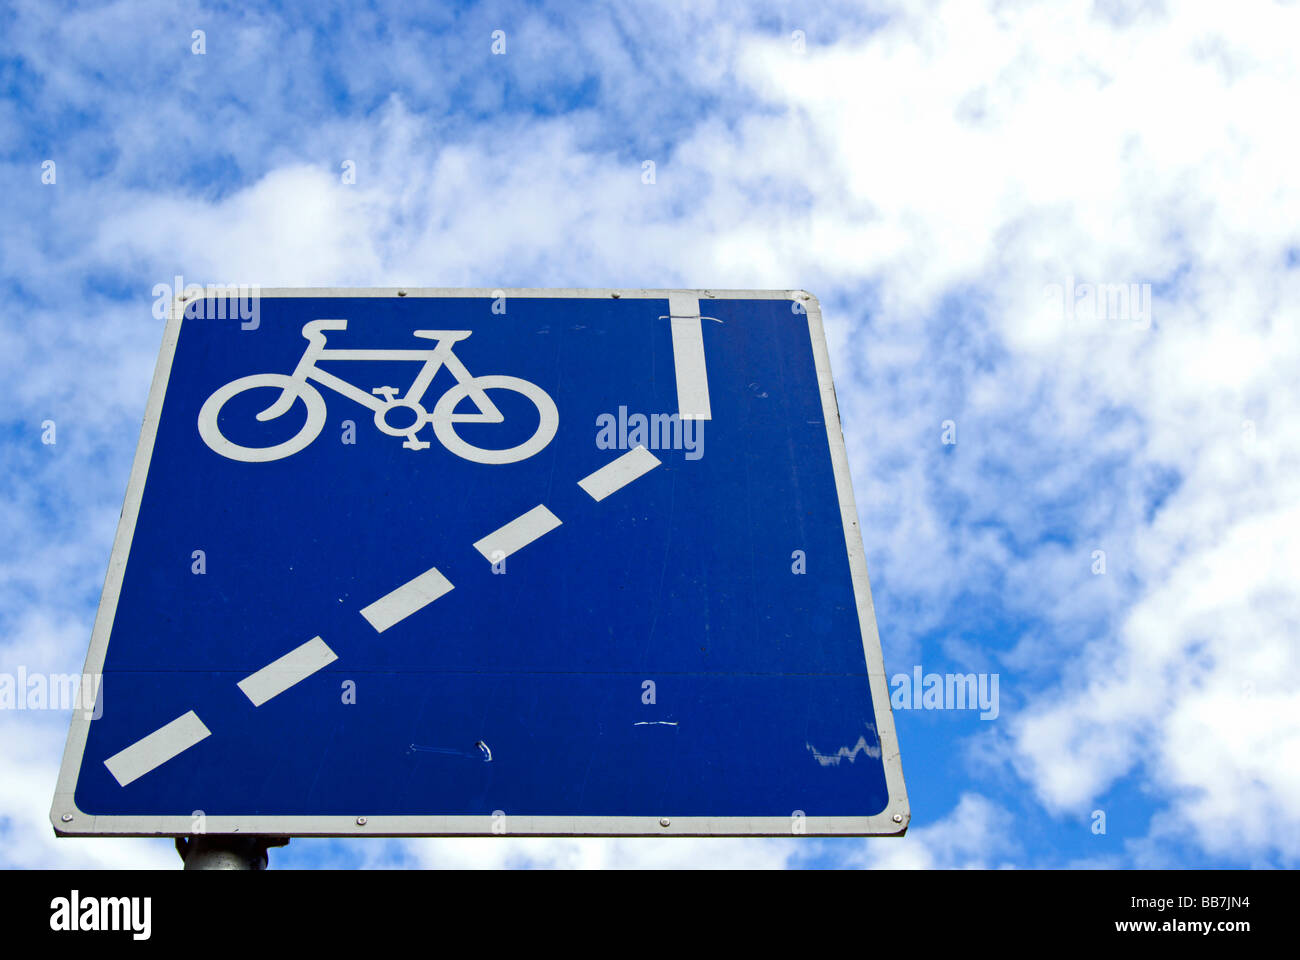 seen under a mottled sky of patch work cirrocumulus cloud british blue and white road sign indicating mandatory - Stock Image